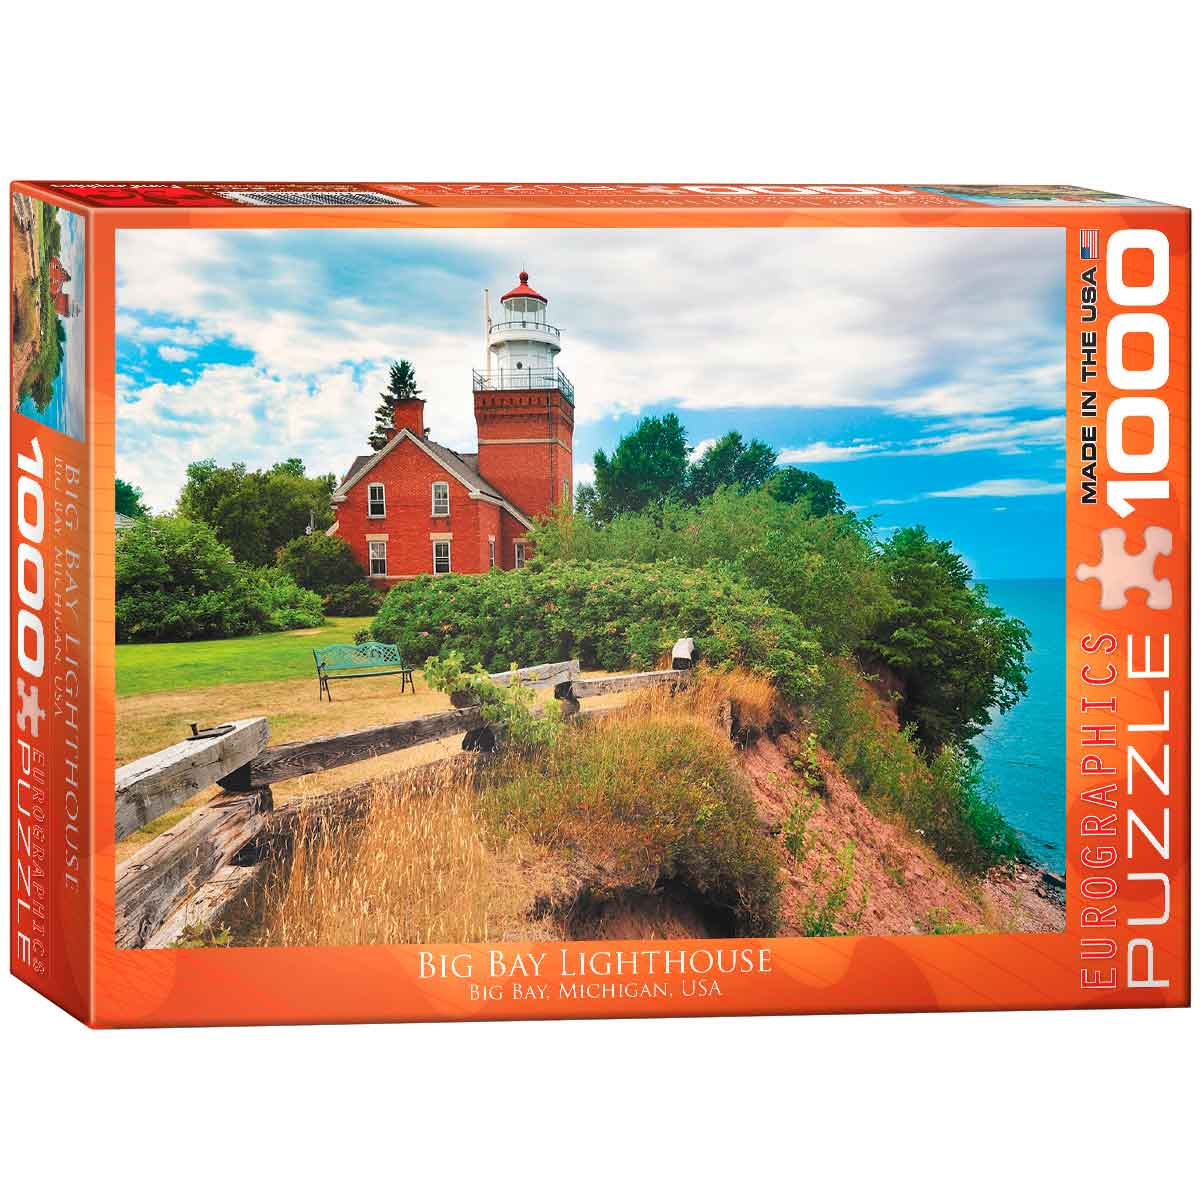 Puzzle Eurographics Faro Big Bay, Michigan de 1000 Piezas